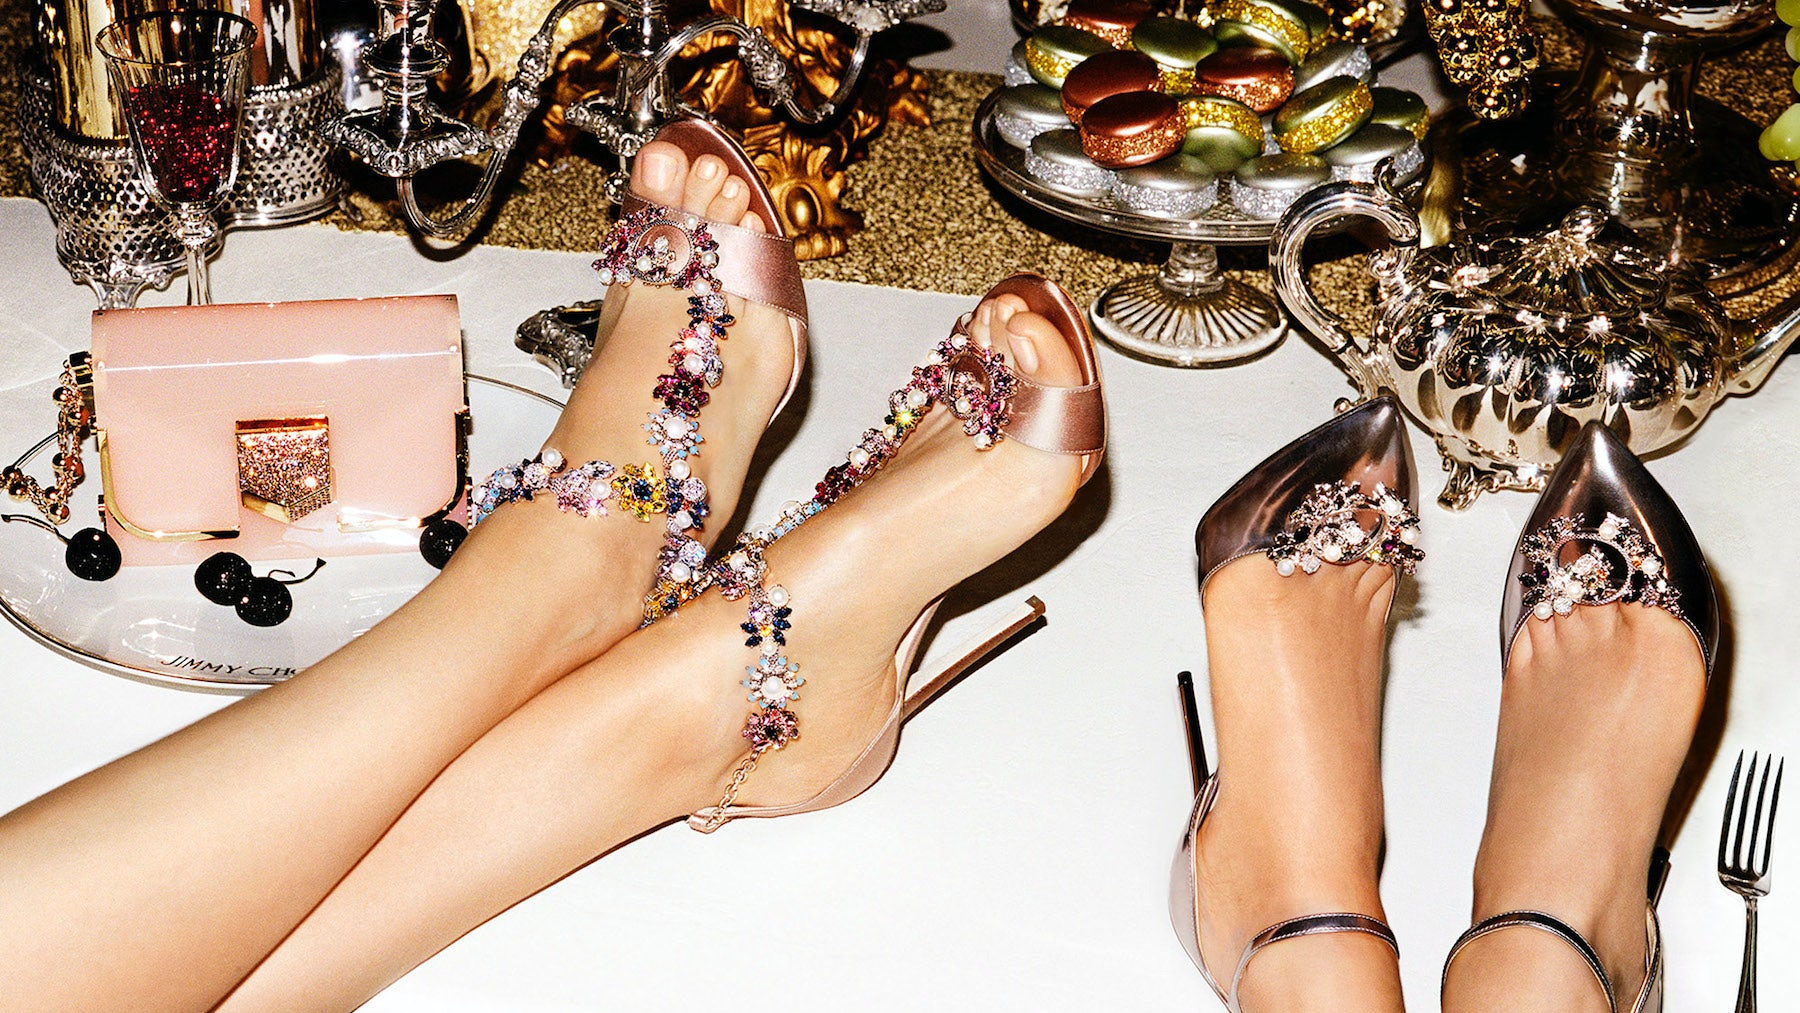 Jimmy Choo Cruise 2017 campaign | Source: Courtesy